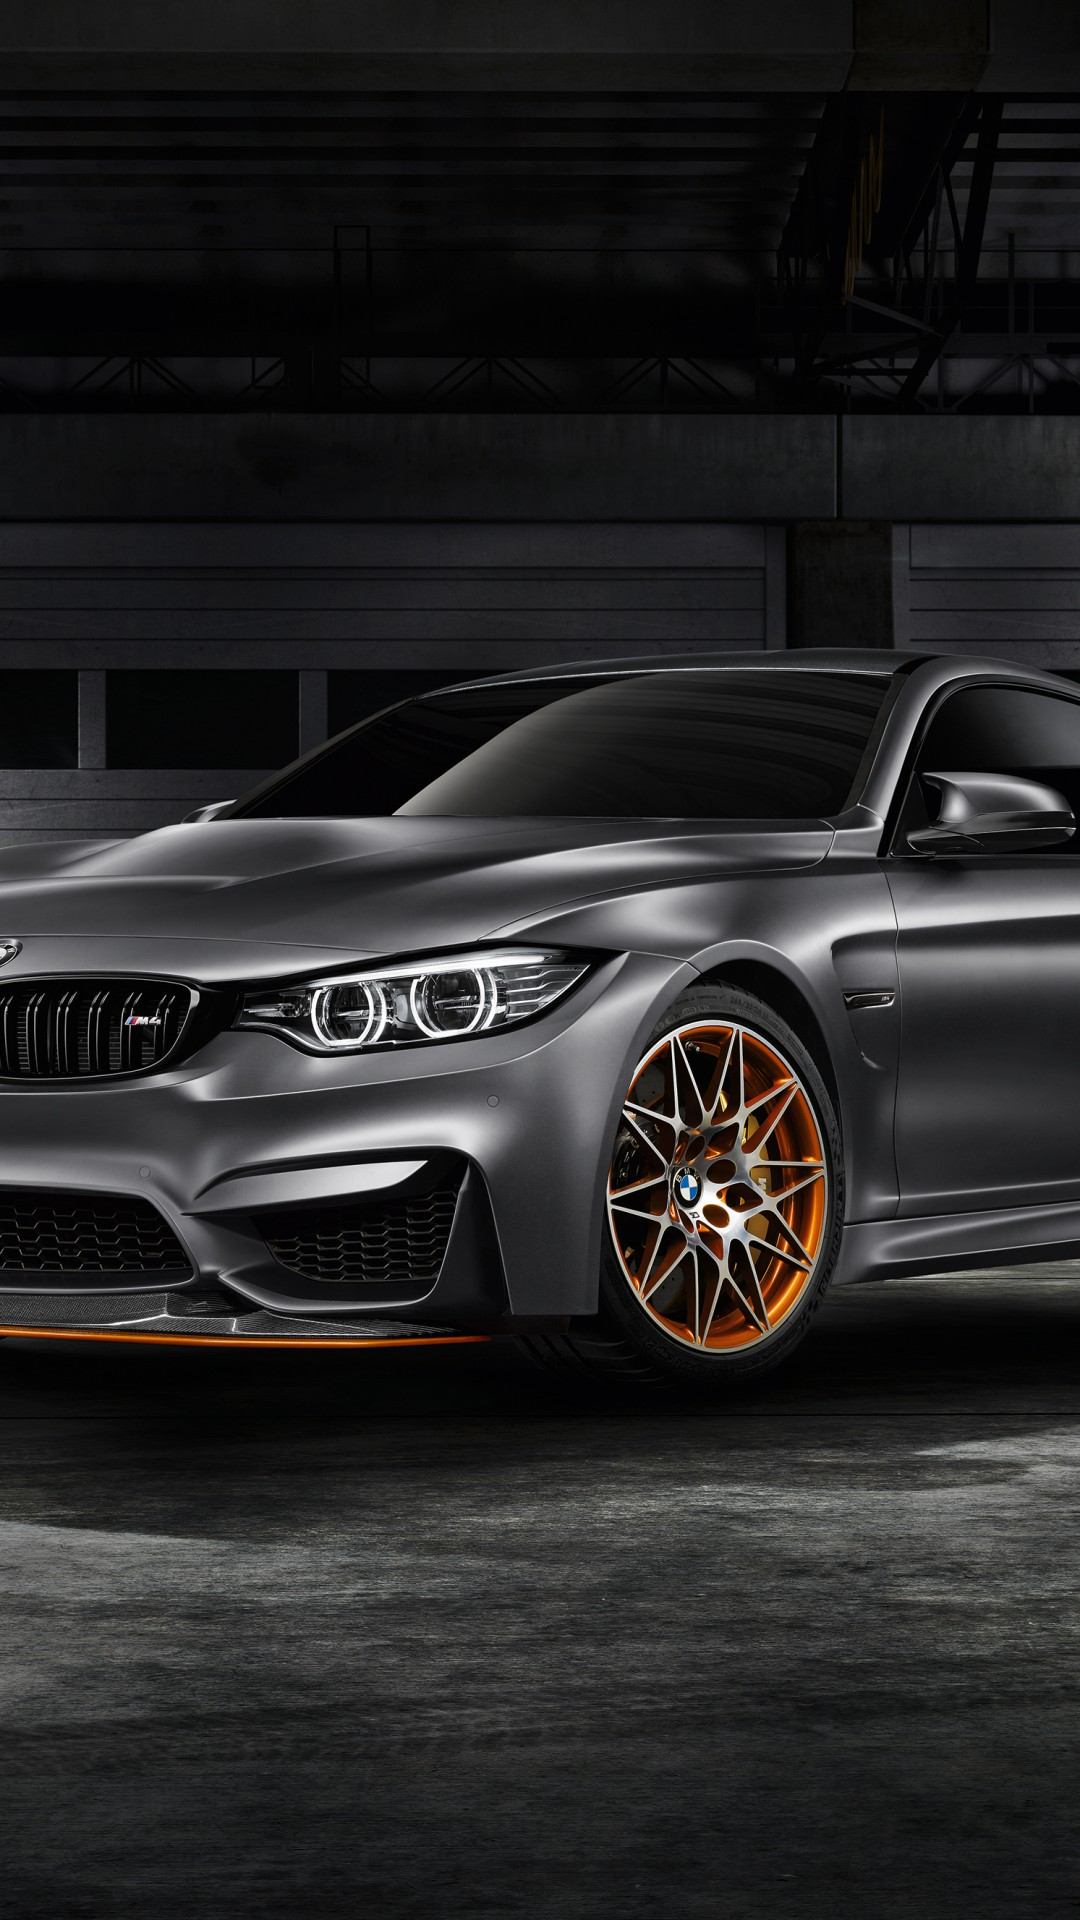 Wallpaper Bmw M4 Gts Concept Car Cars Amp Bikes 7423